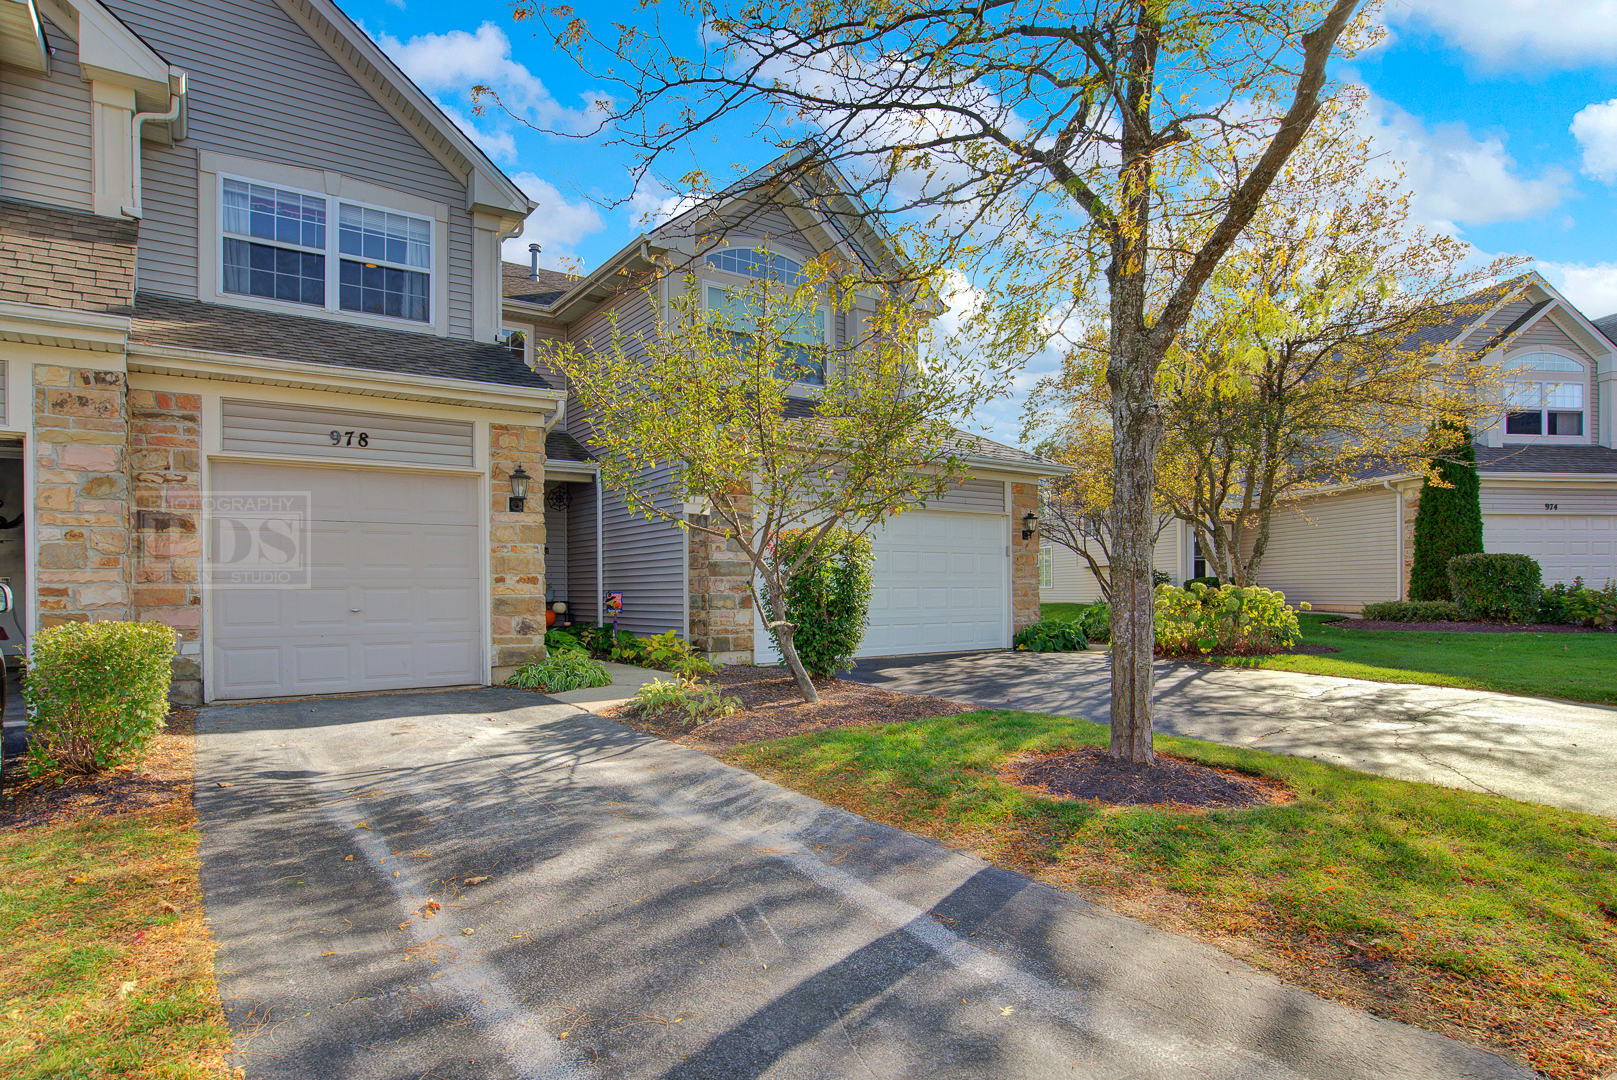 Photo for 978 Mesa Drive, Lake In The Hills, IL 60156 (MLS # 10896371)